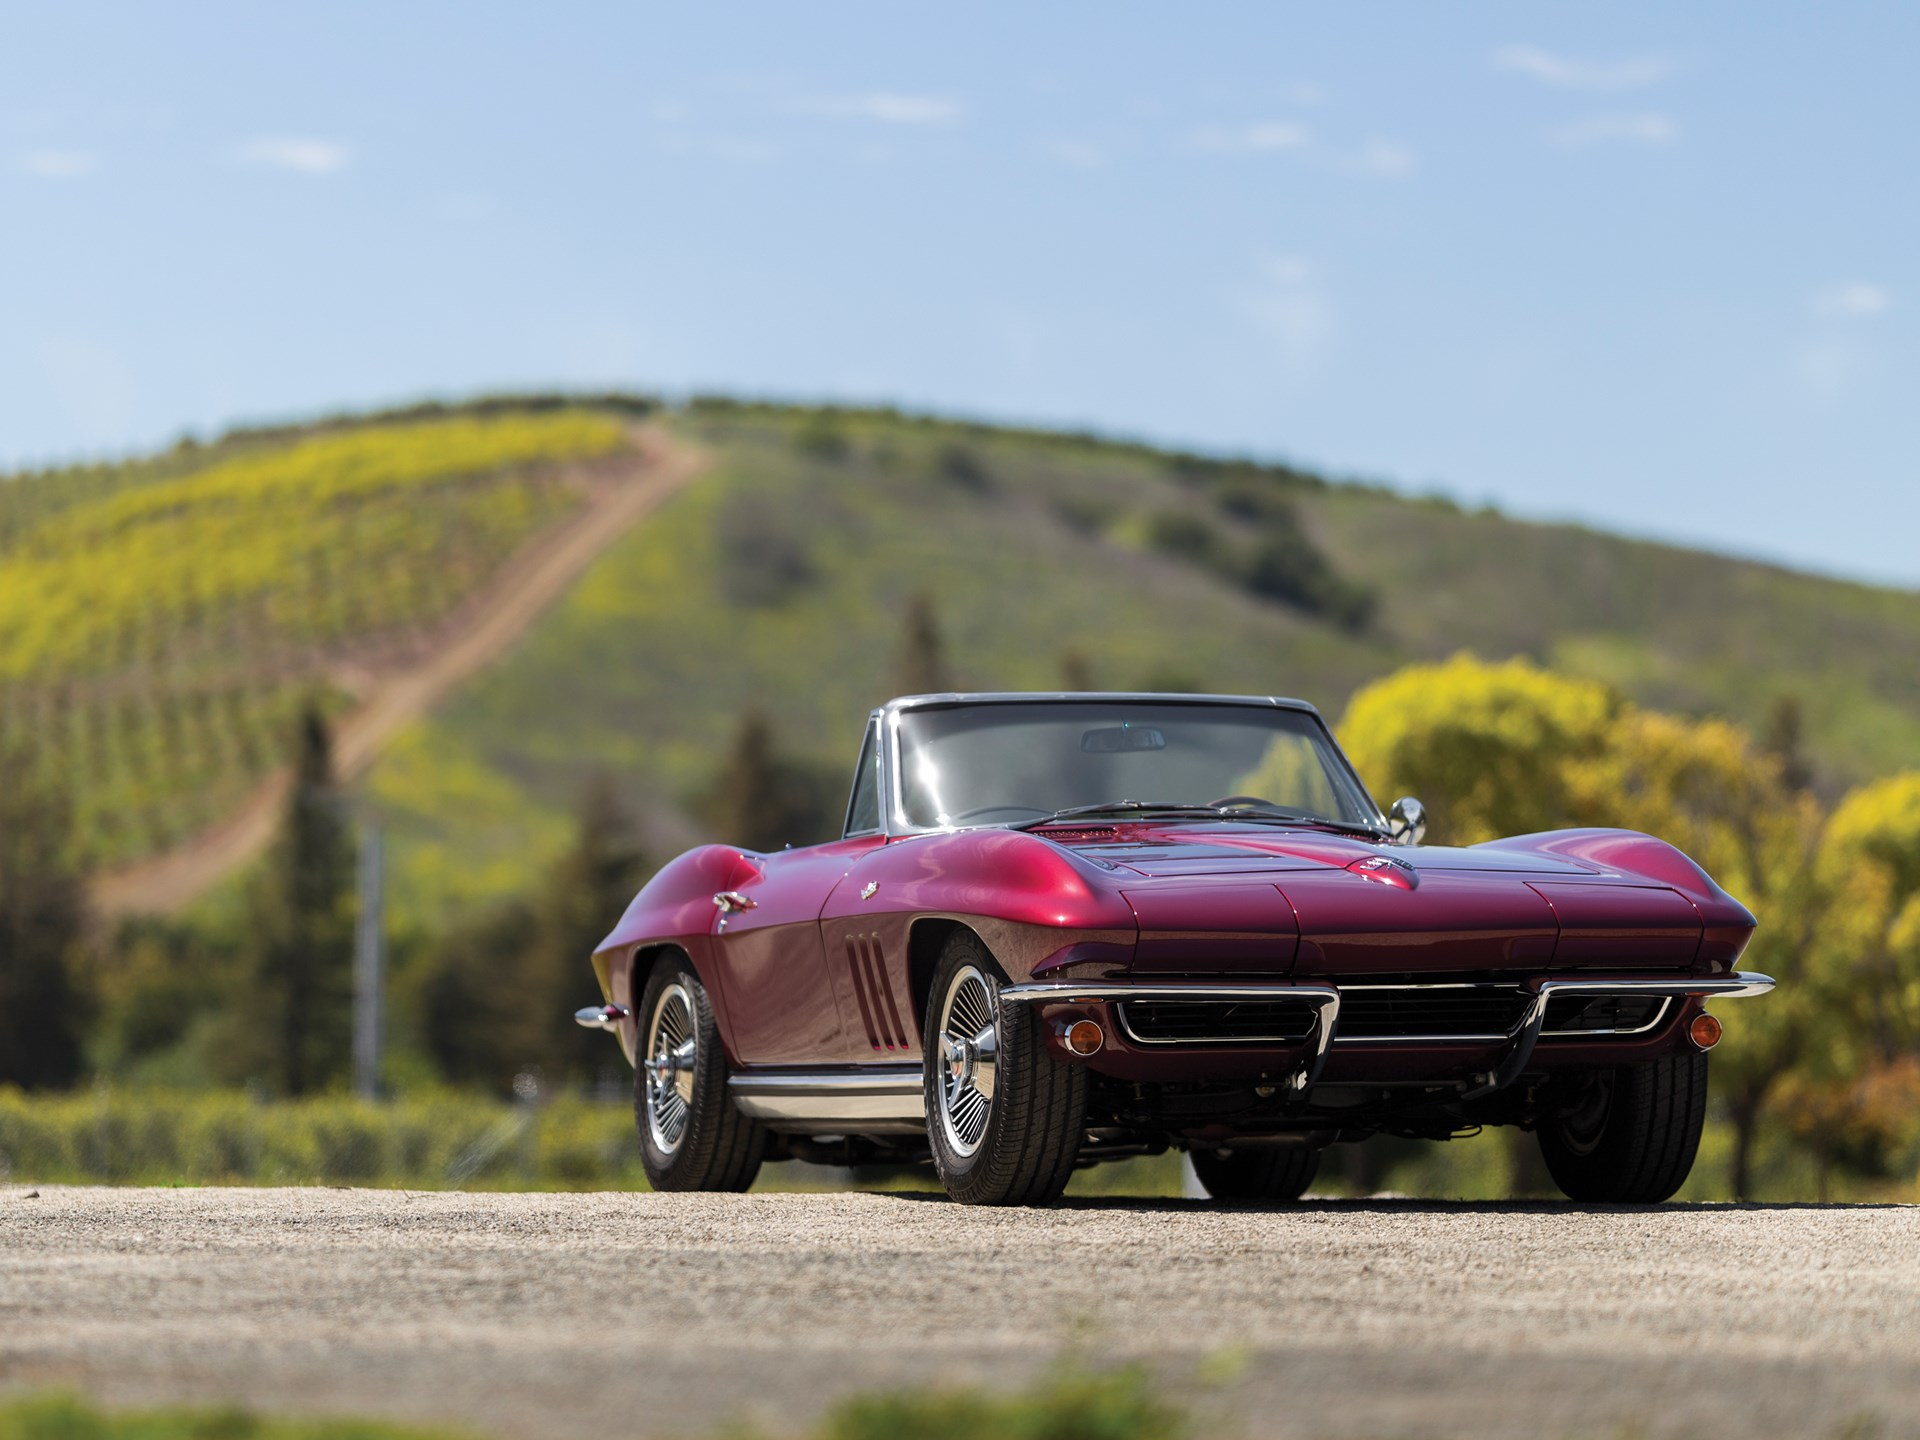 RM Sotheby's - 1965 Chevrolet Corvette Sting Ray Convertible